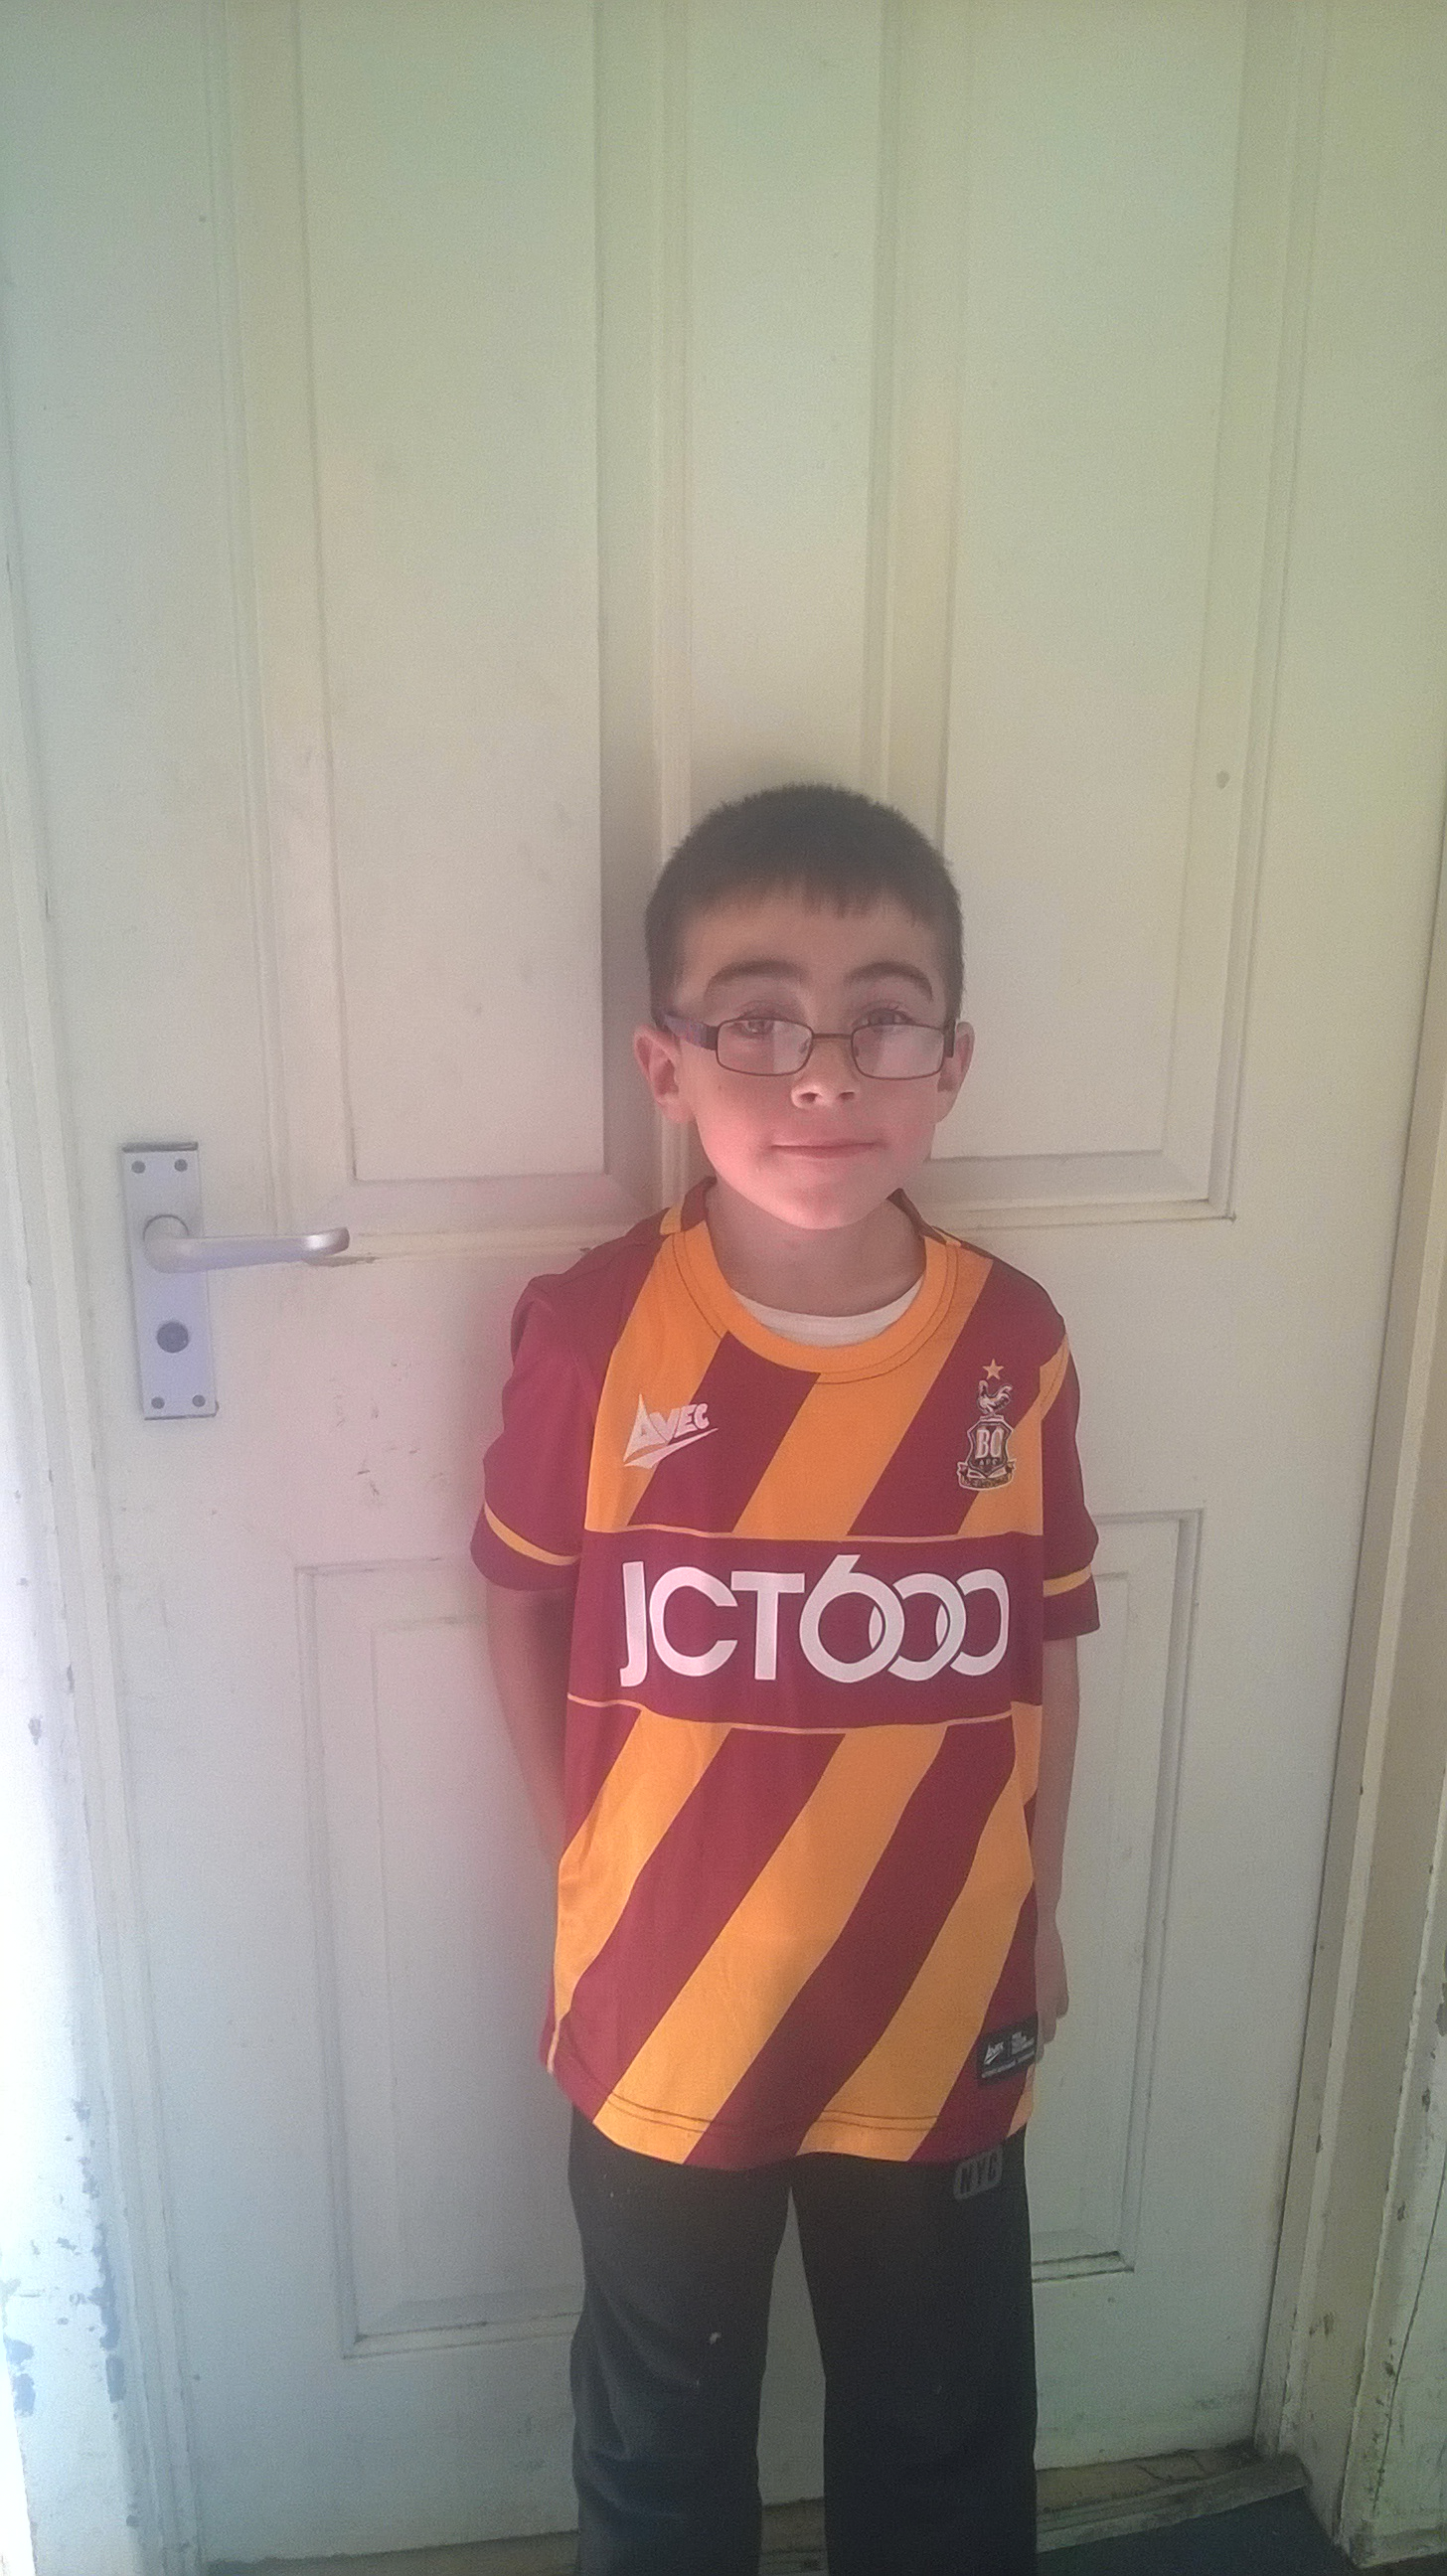 Bradford Telegraph and Argus: Good luck City,first trip to Wembley for my 7year old Kane,he can't wait!! Have a fantastic time everyone 😁 xxx